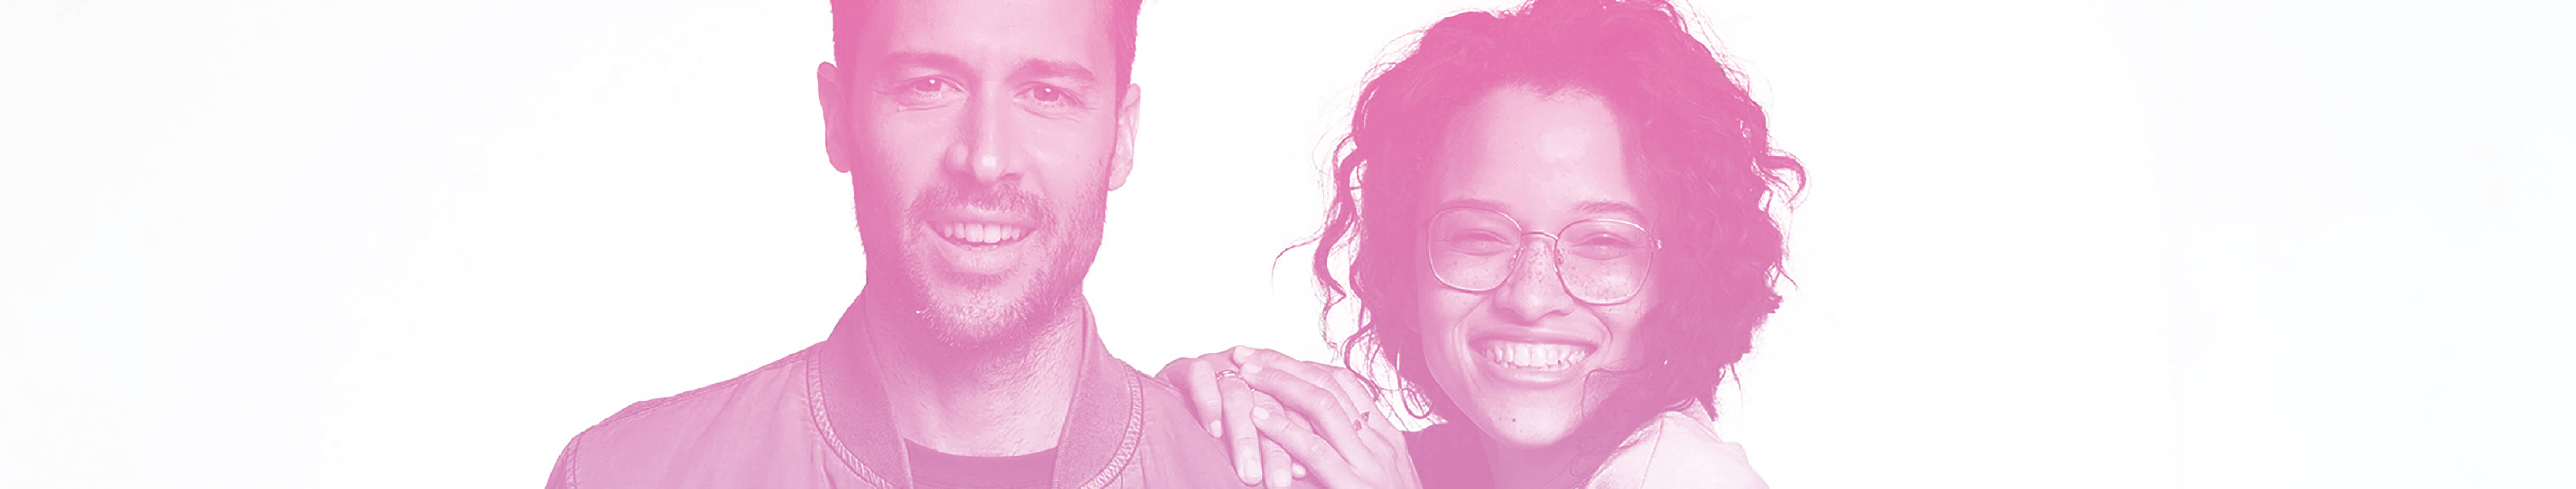 two people smiling with pink overlay